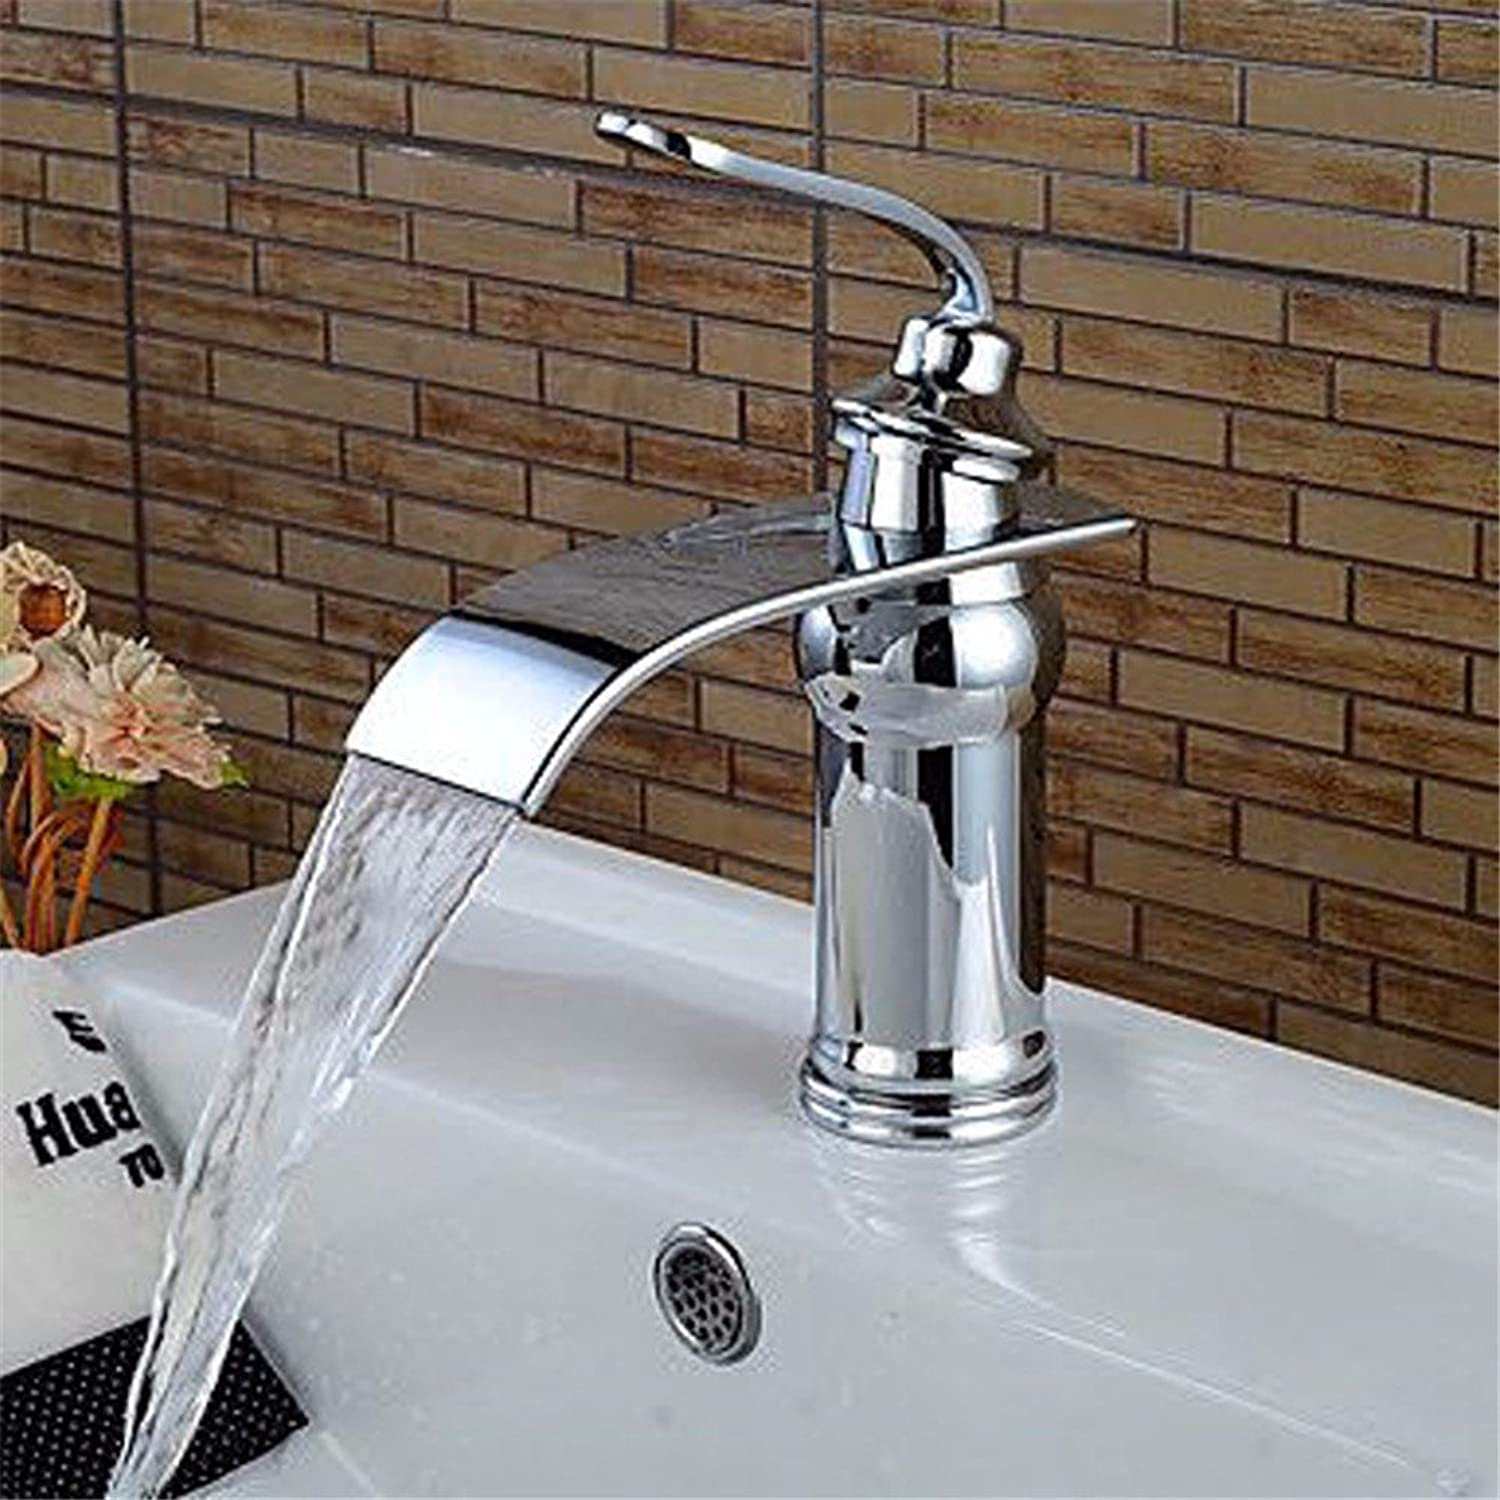 Bathroom Faucet All Bronze Waterfall Plating Hot and Cold Basin Faucet,A